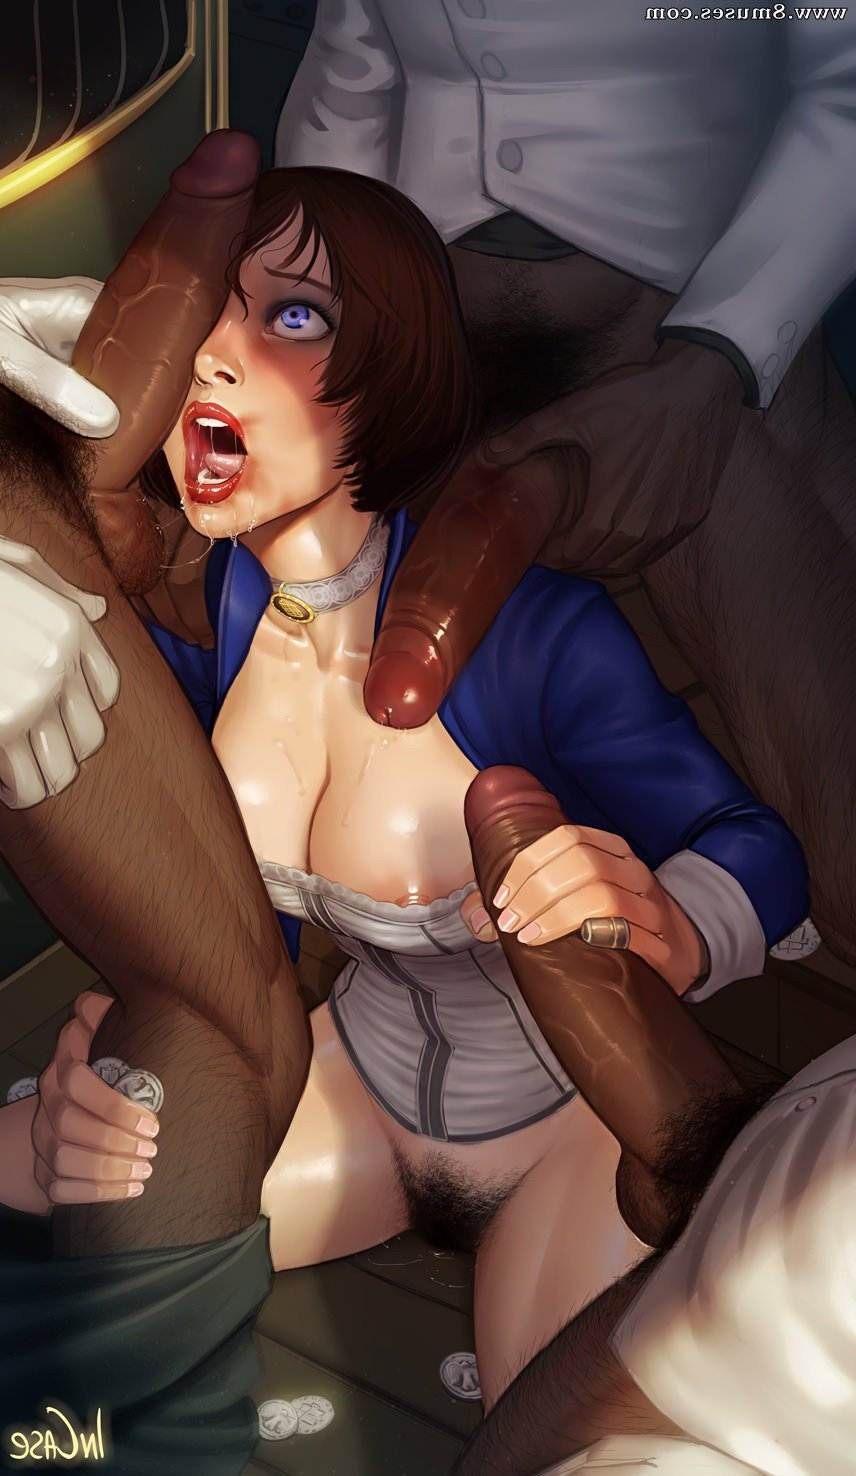 Incase-Comics/Artwork Artwork__8muses_-_Sex_and_Porn_Comics_275.jpg